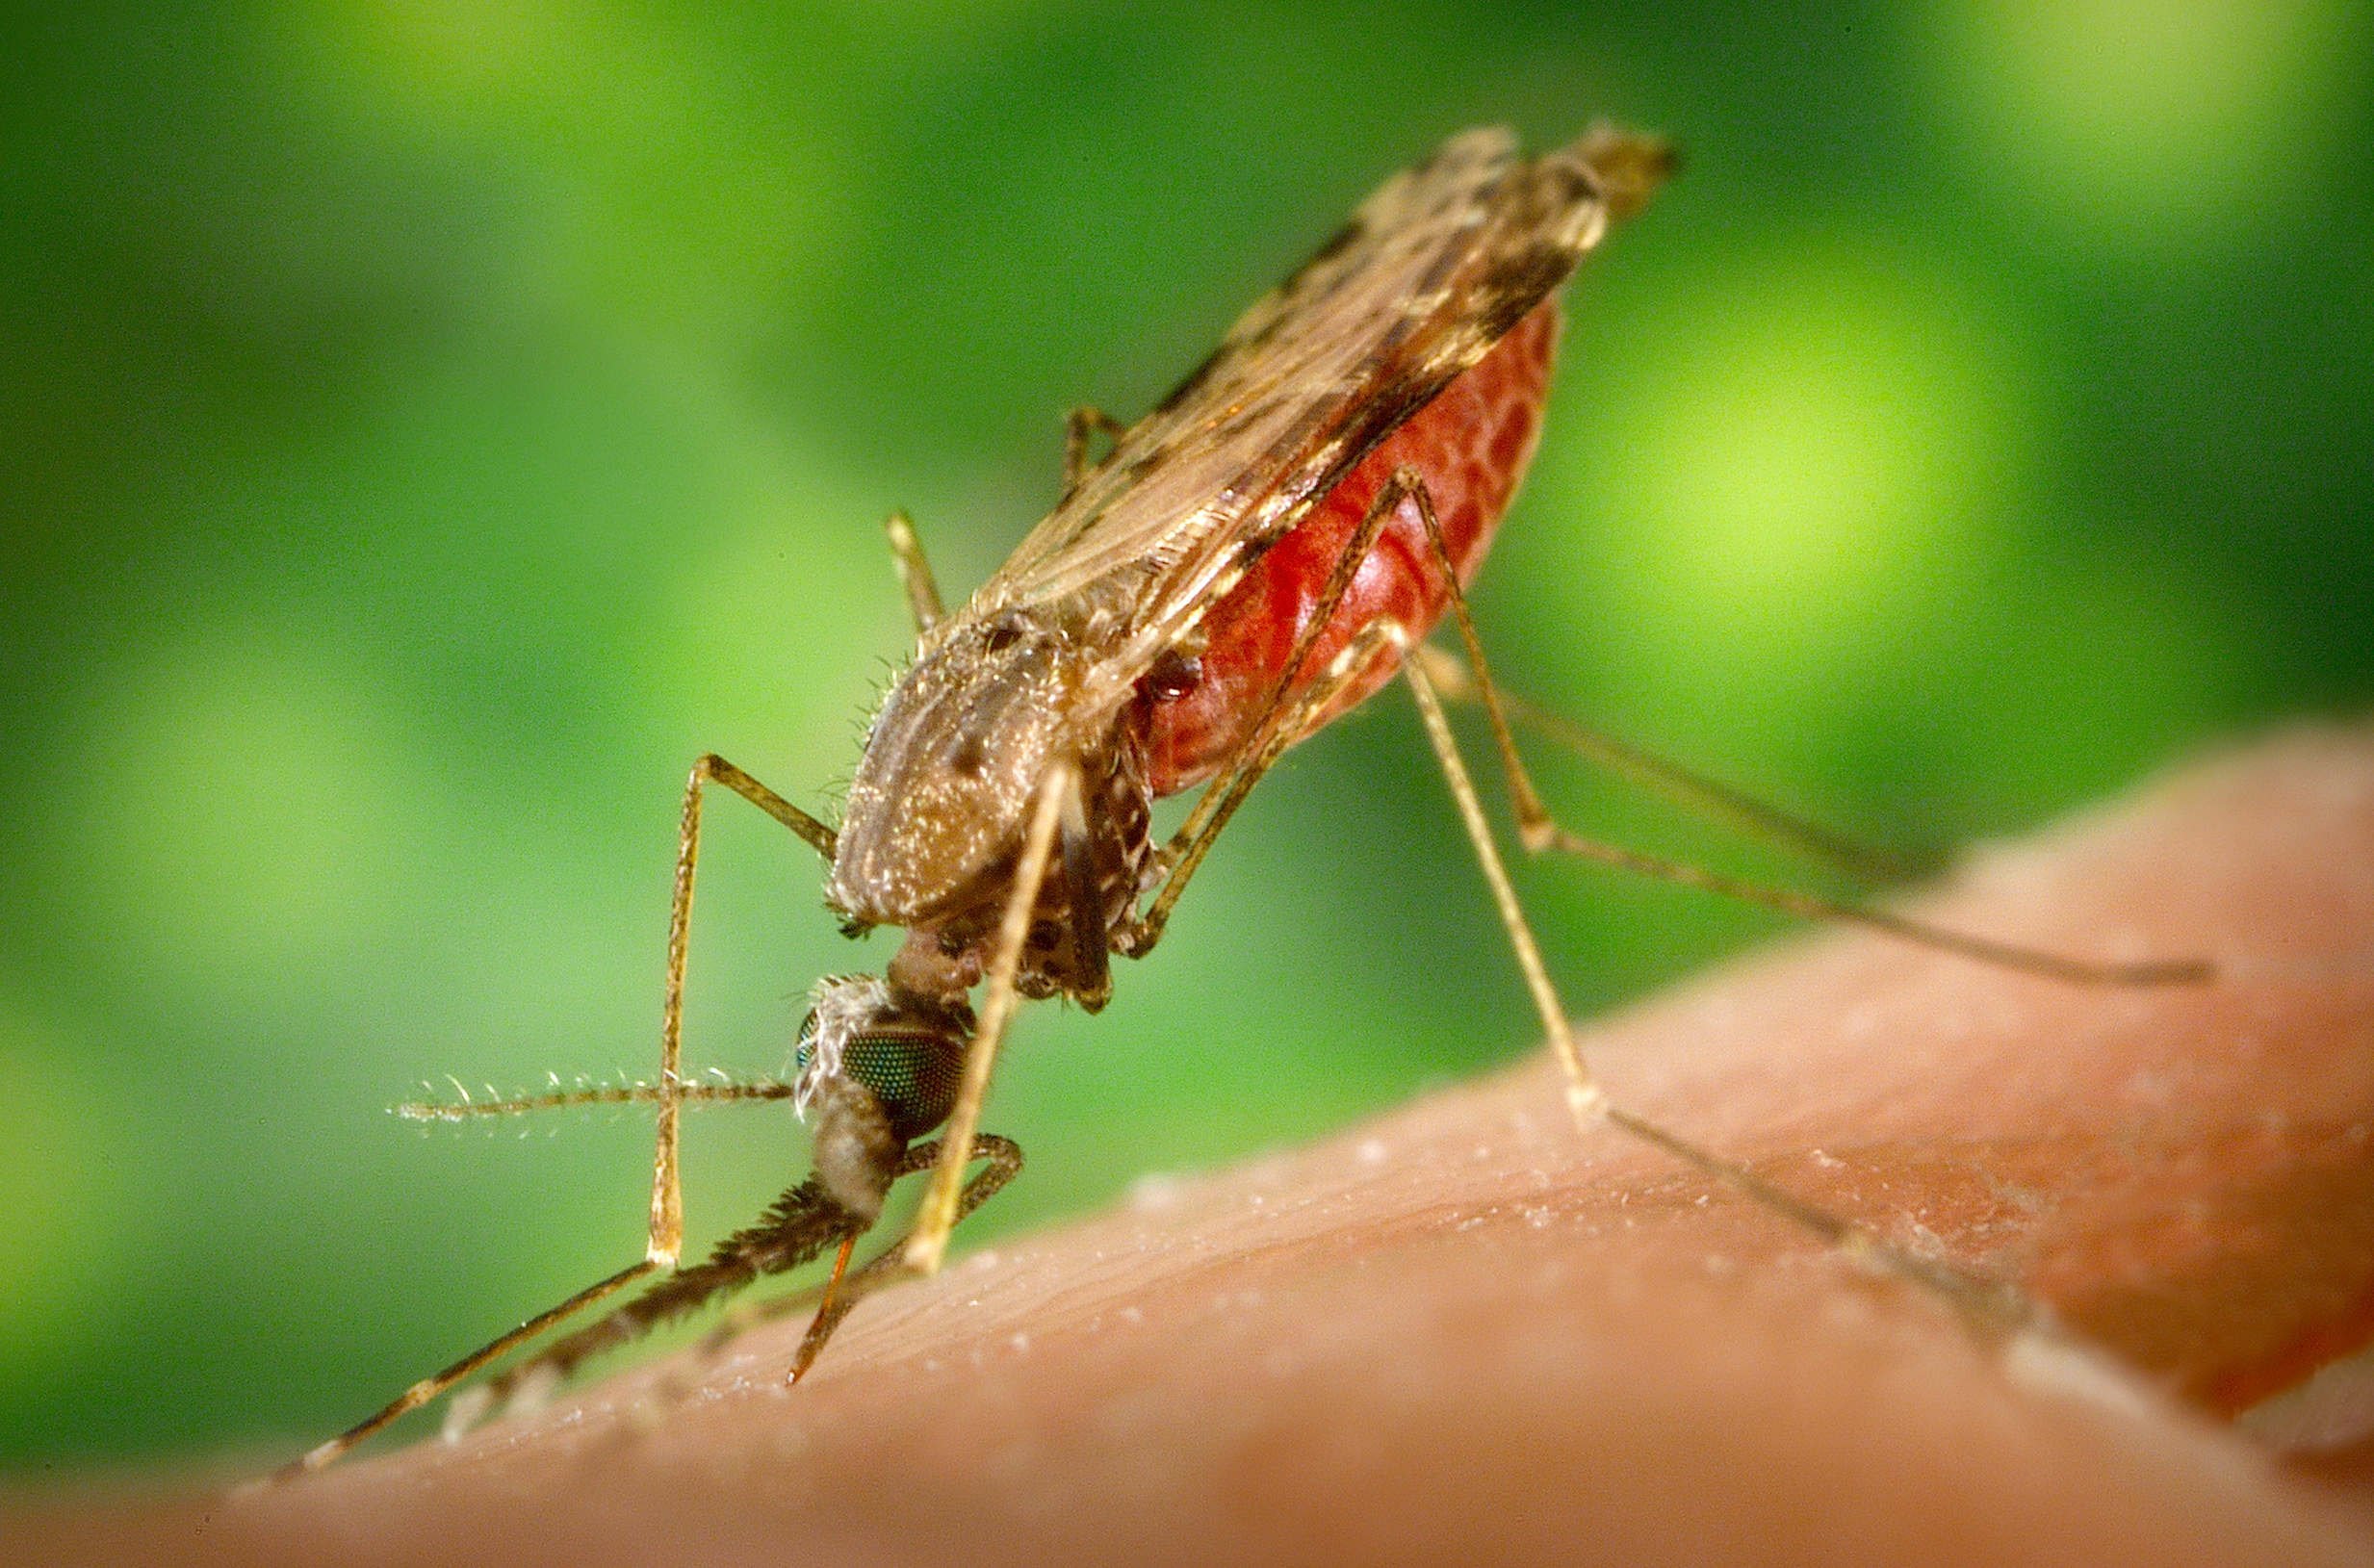 The anopheles mosquito. Image source: Wikipedia